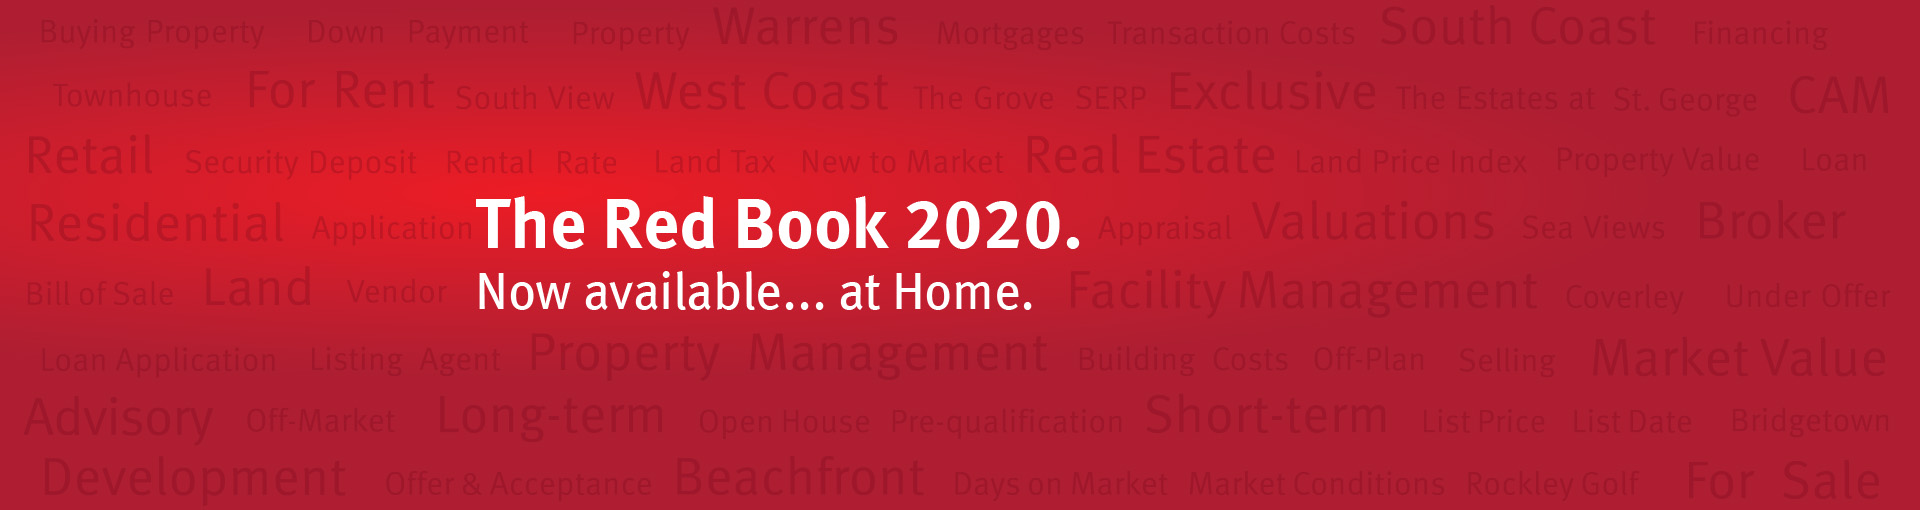 The Red Book 2020